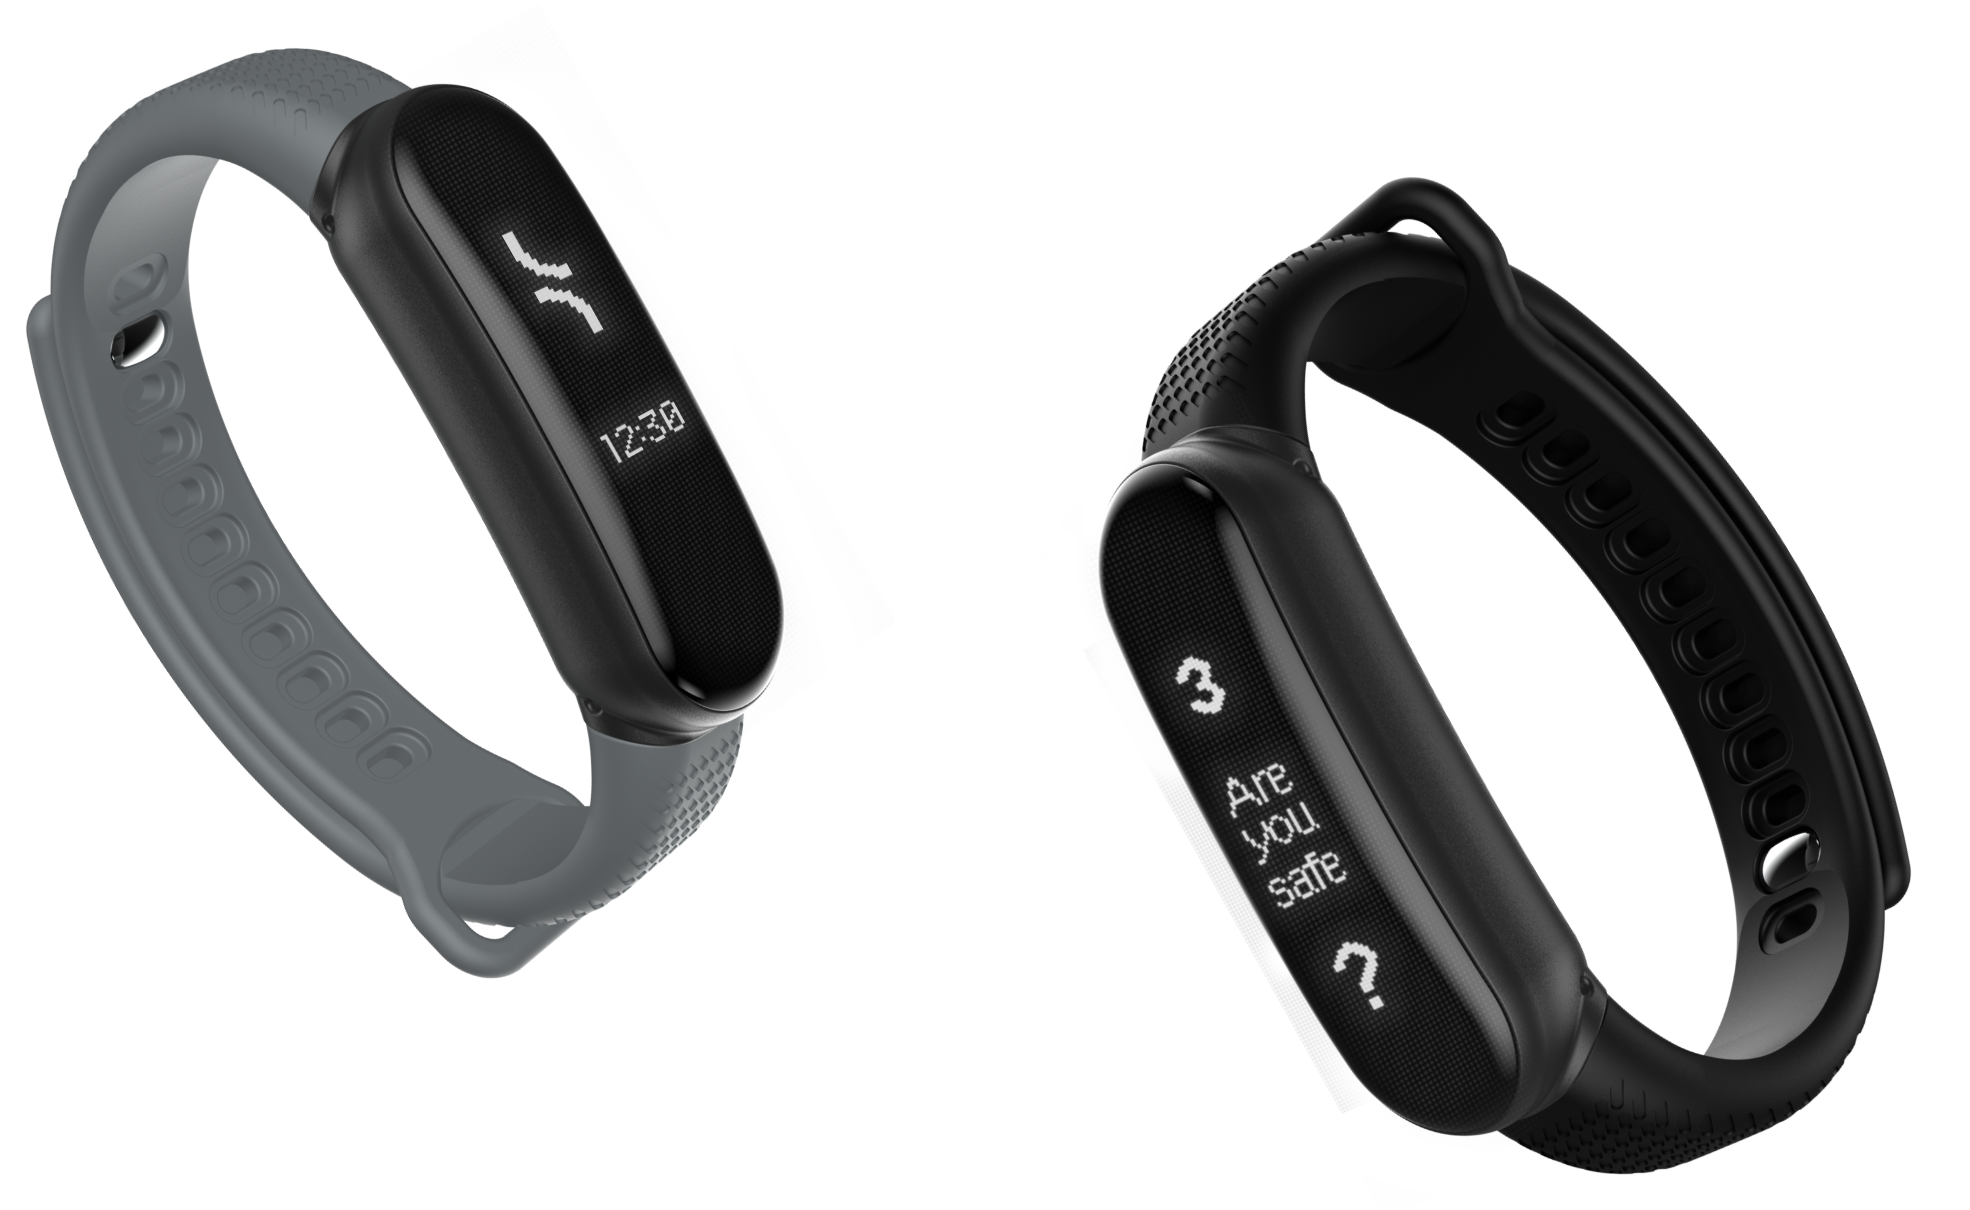 Tended's safety wearables showing the time and check in screens